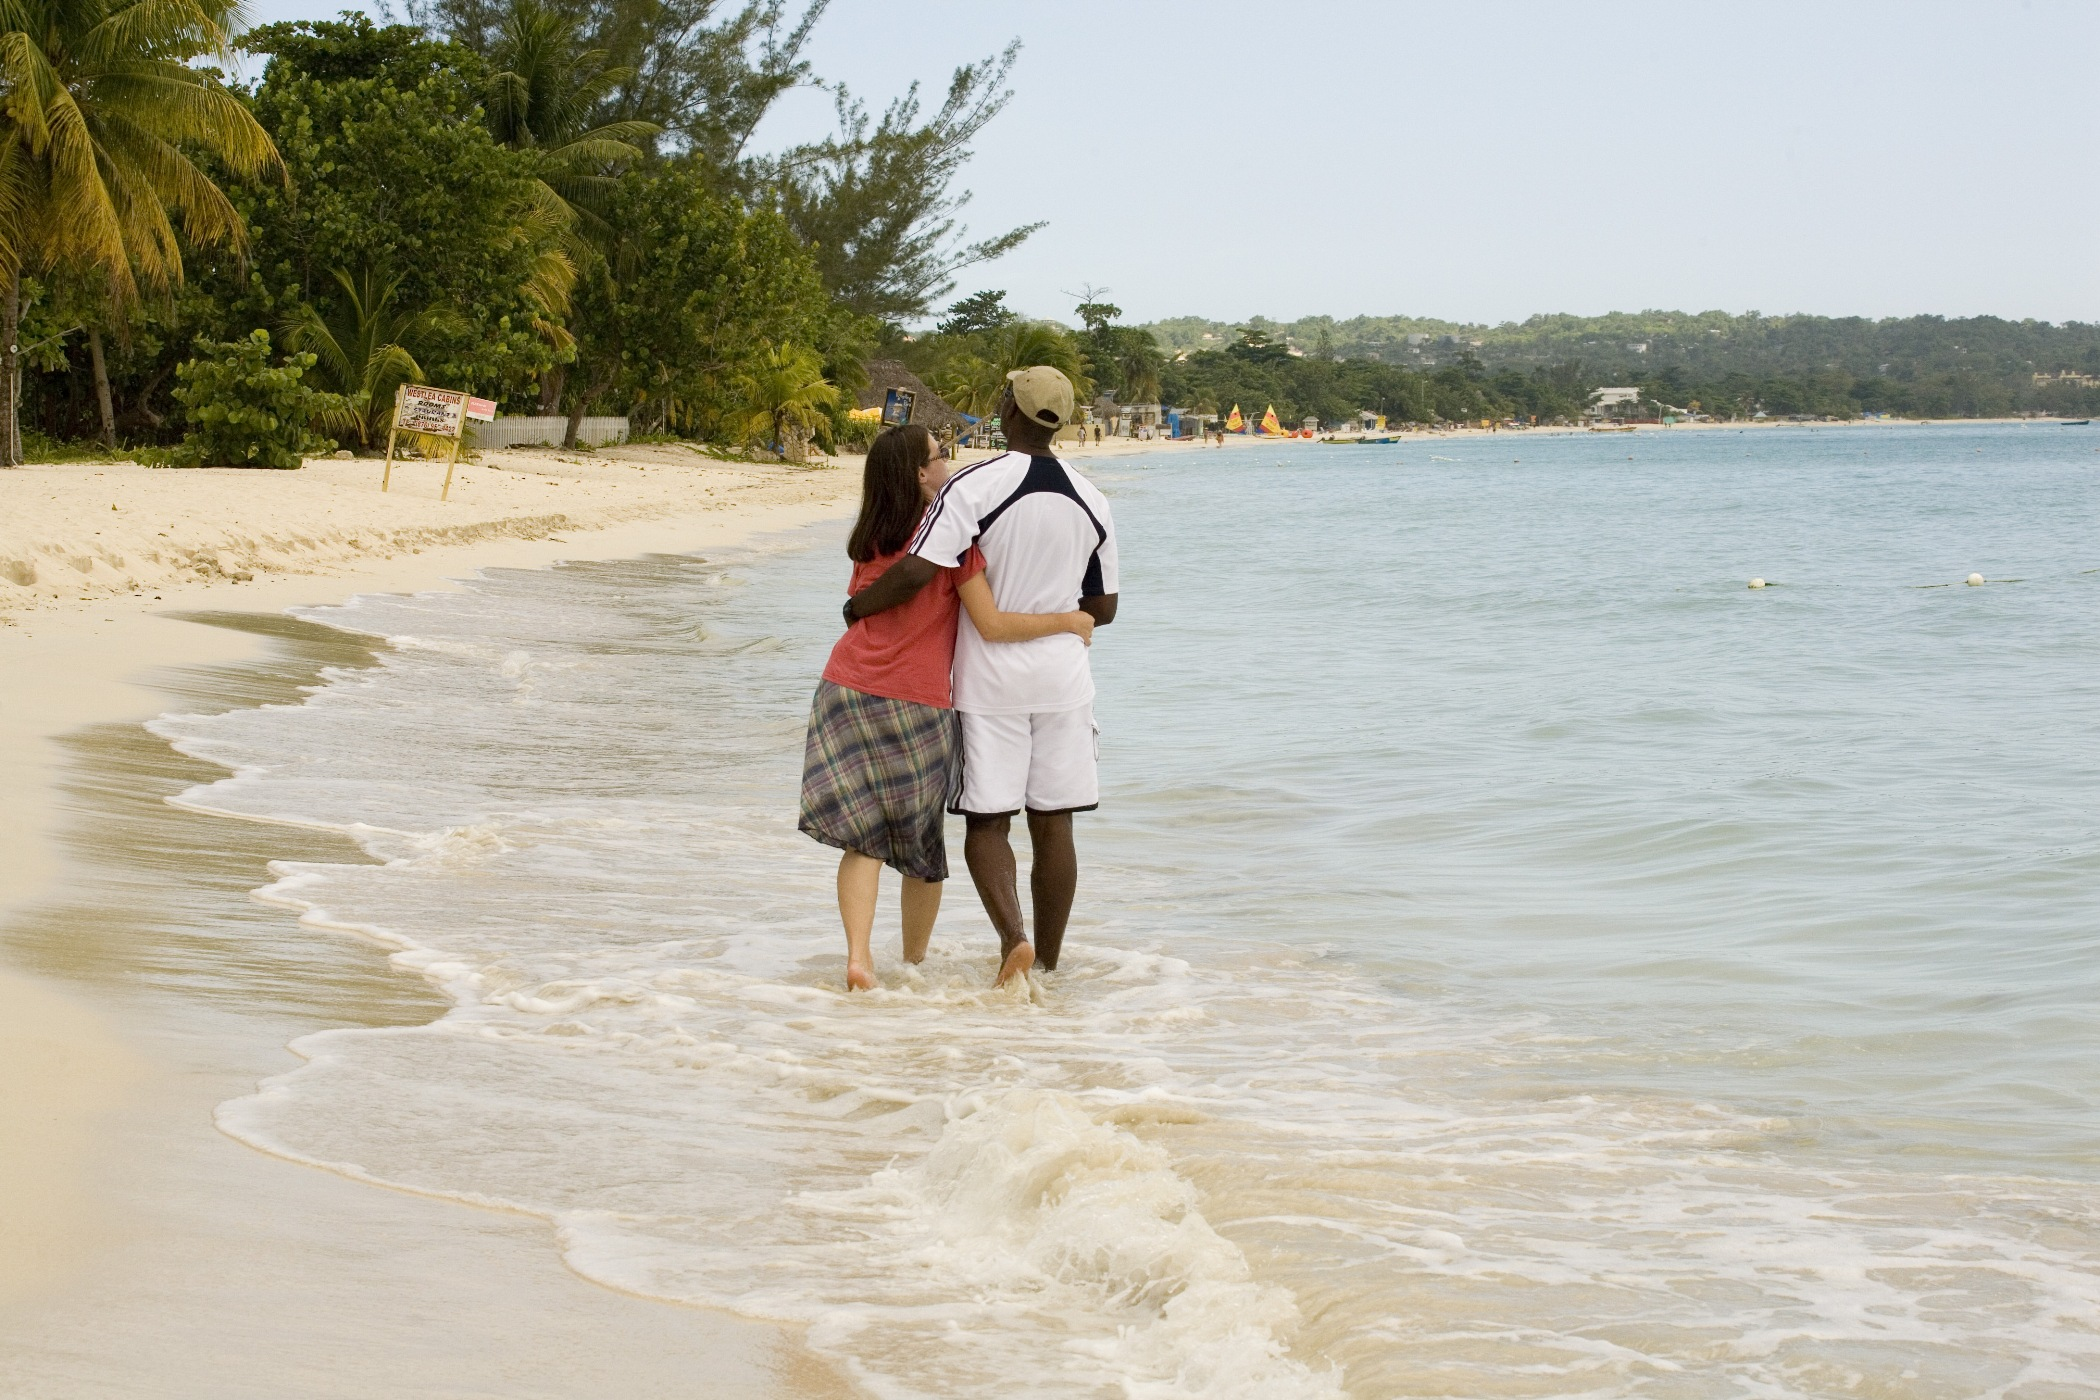 essay on jamaica tourism The contest, which is sponsored by the association's charitable arm, the fcca foundation for the caribbean, was created to encourage children's creativity and generate awareness of the vital role cruise tourism plays in the caribbean.